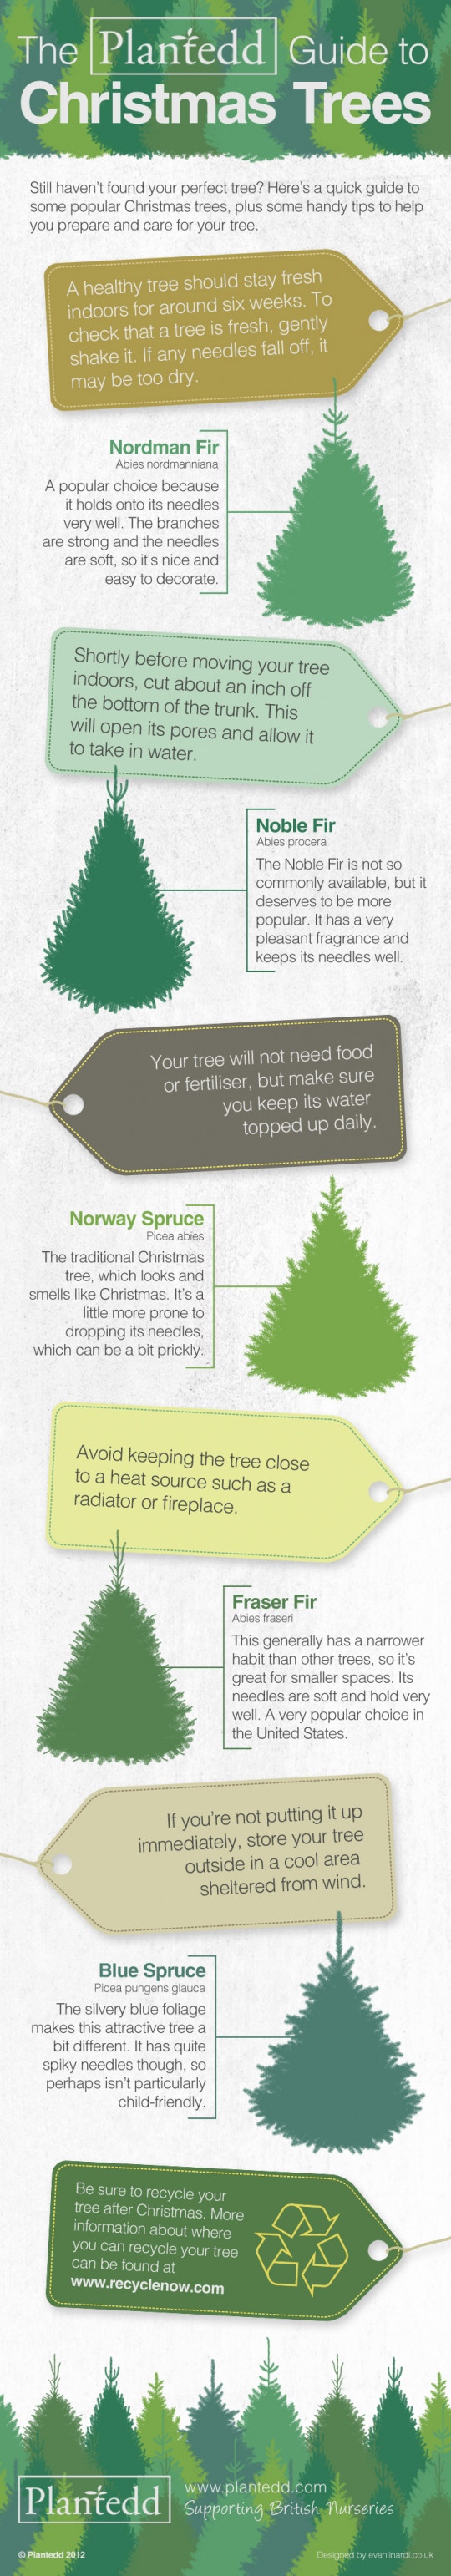 A guide to real Christmas trees